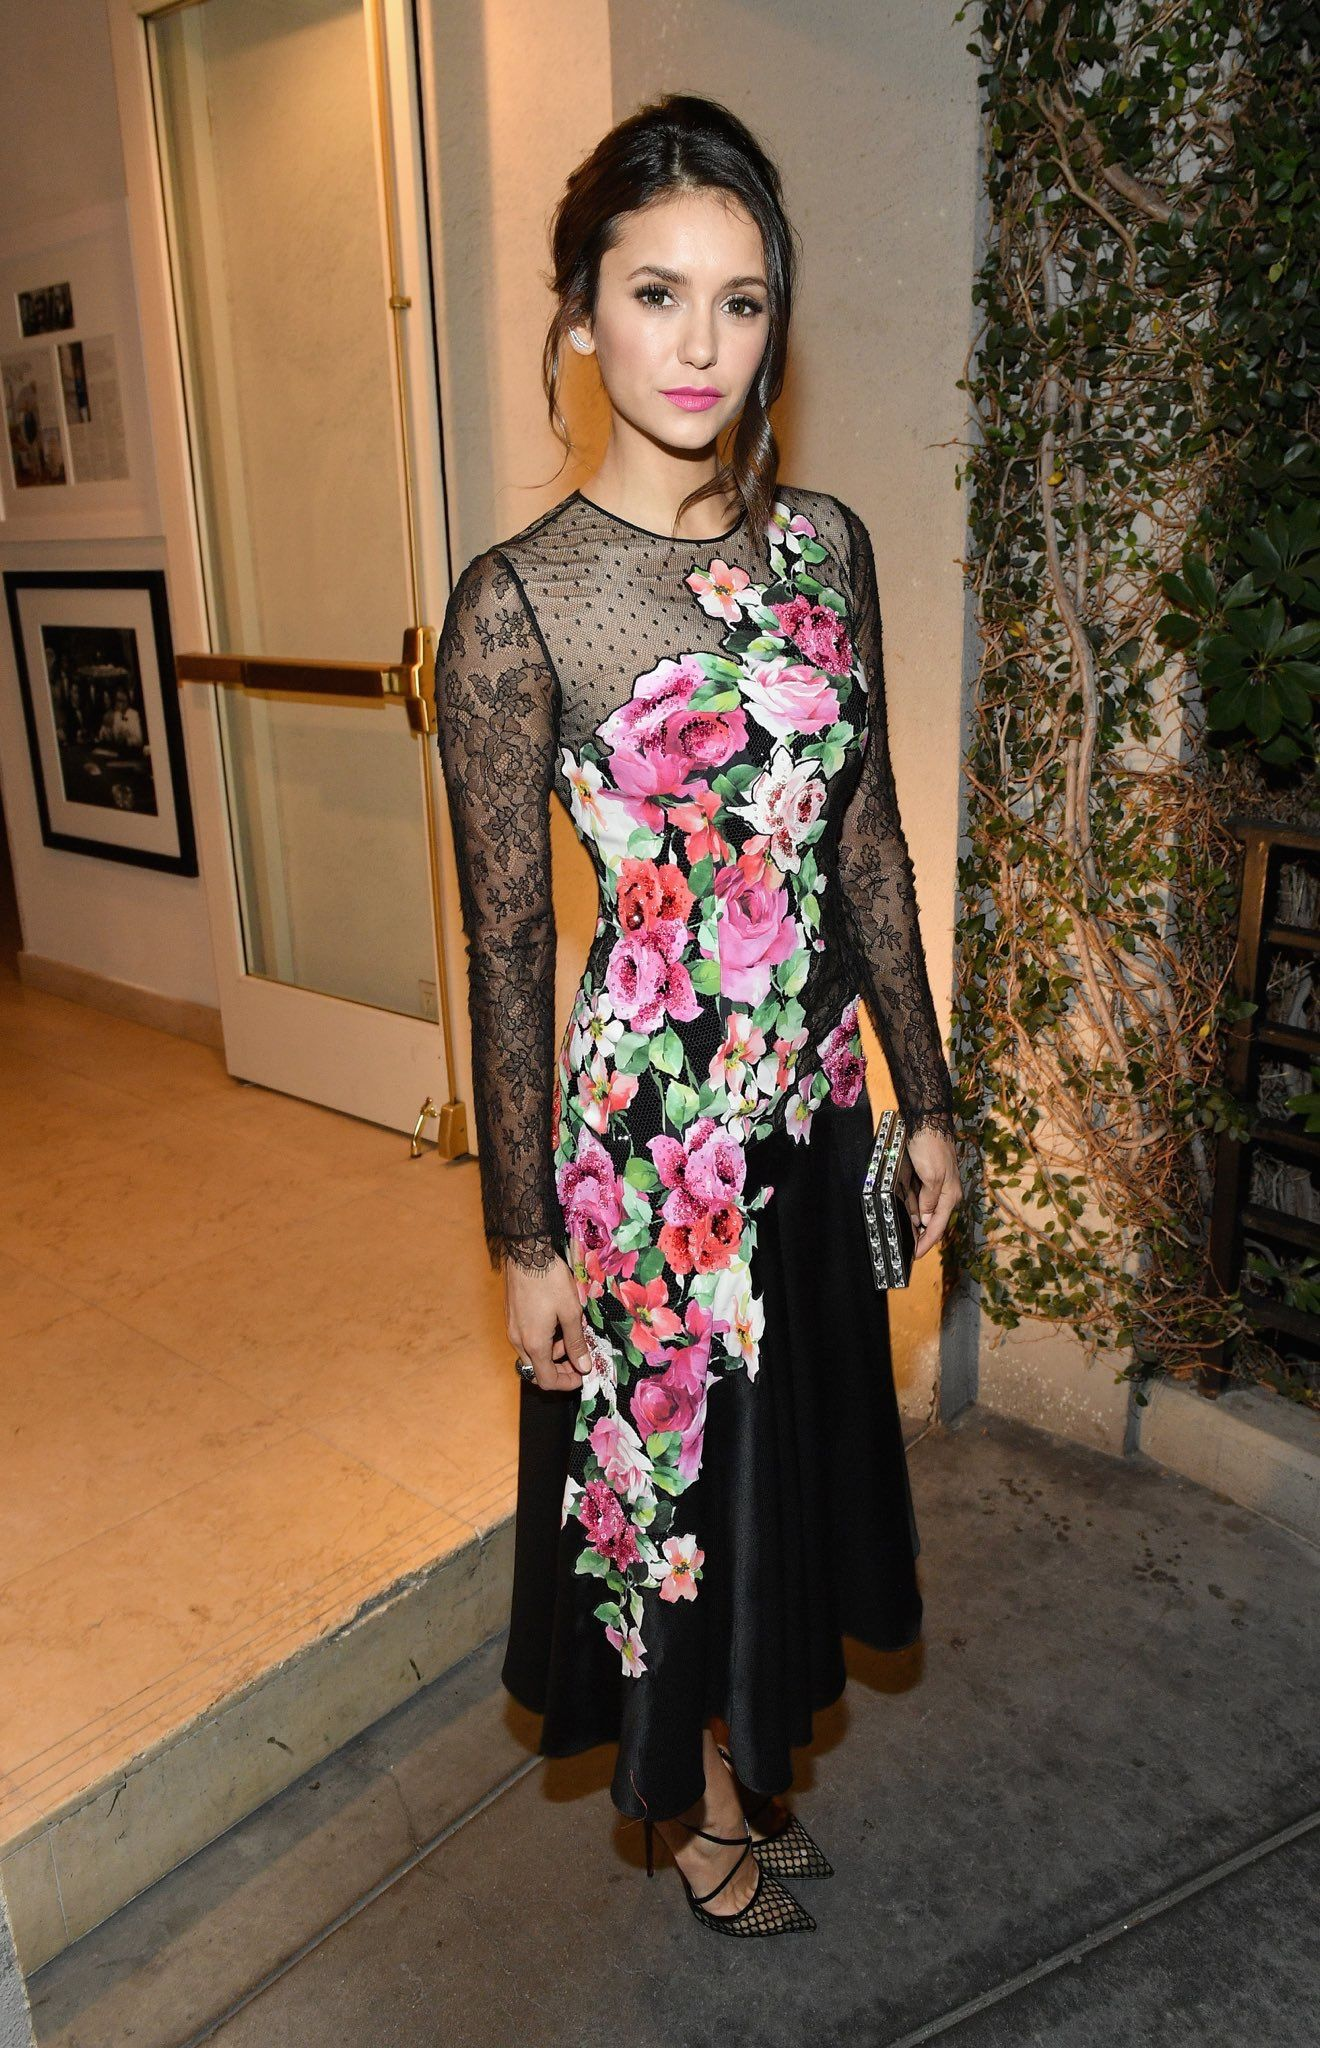 Nina Dobrev attends a special event hosted by Paramount Pictures' Brad Grey